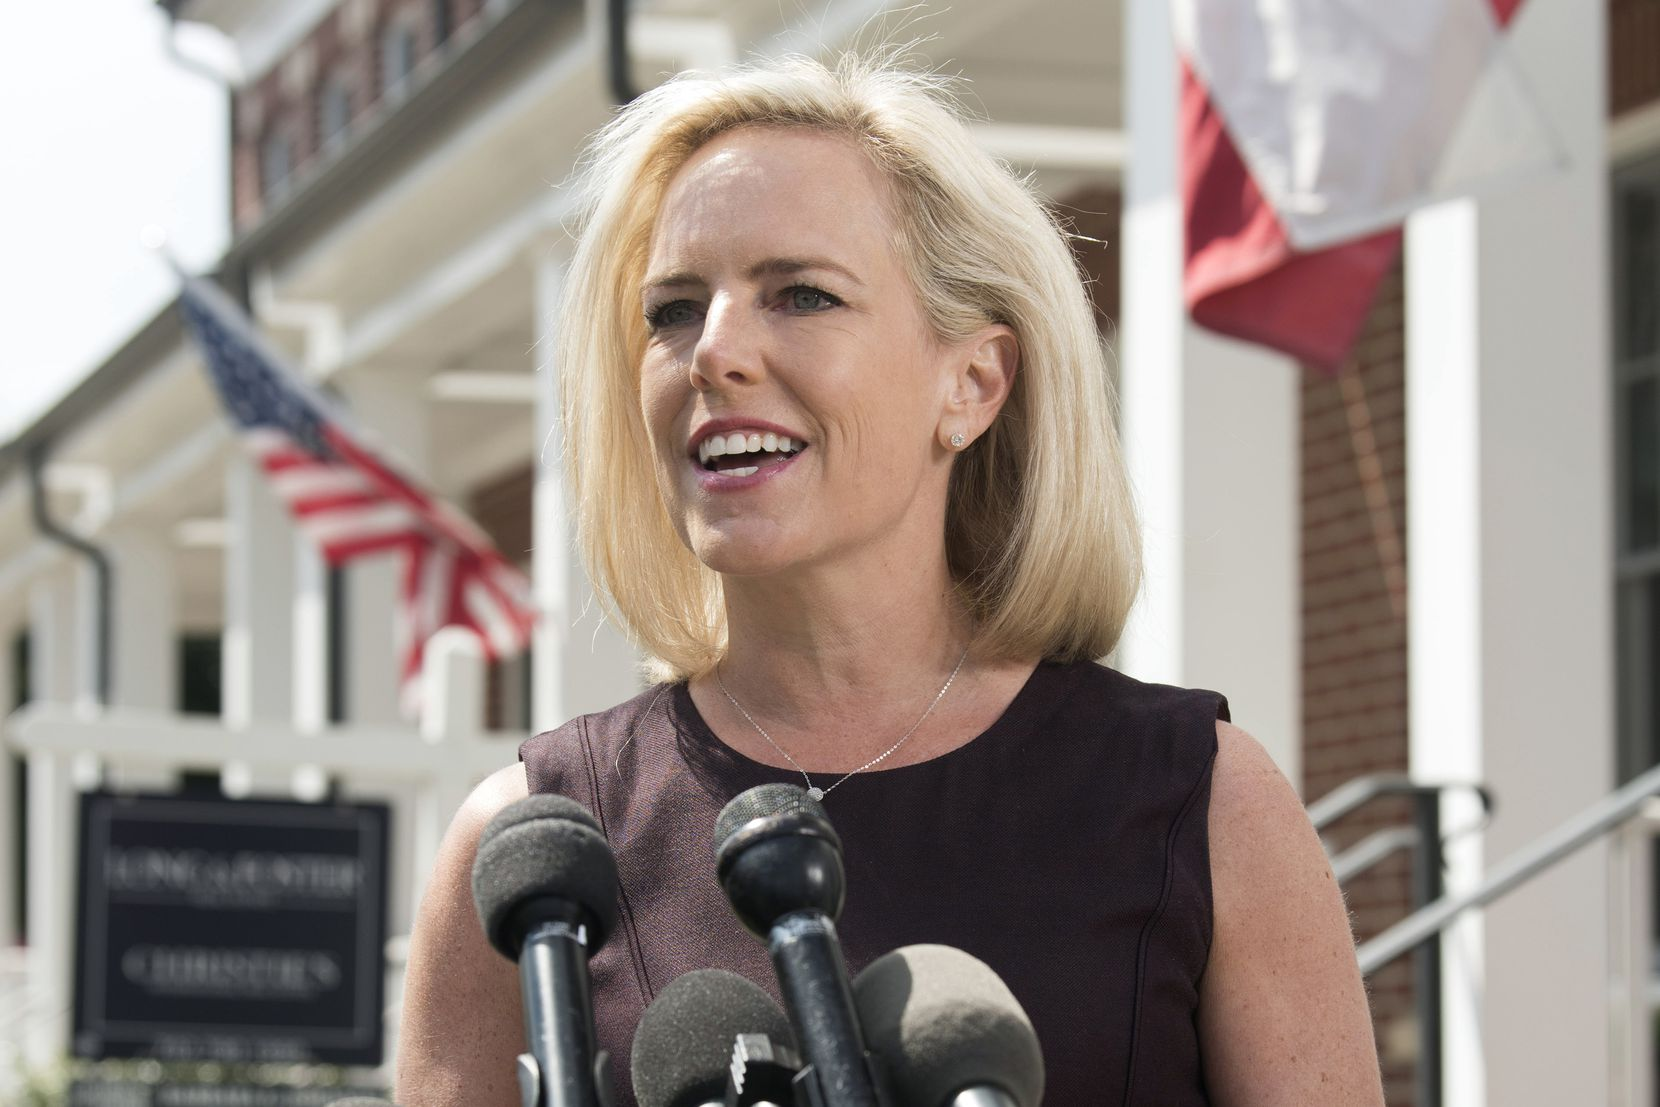 Homeland Security Secretary Kirstjen Nielsen talks outside her home in Alexandria, Va., on Thursday, April 8, 2019. Nielsen says she continues to support the president's goal of securing the border in her first public remarks since her surprise resignation.